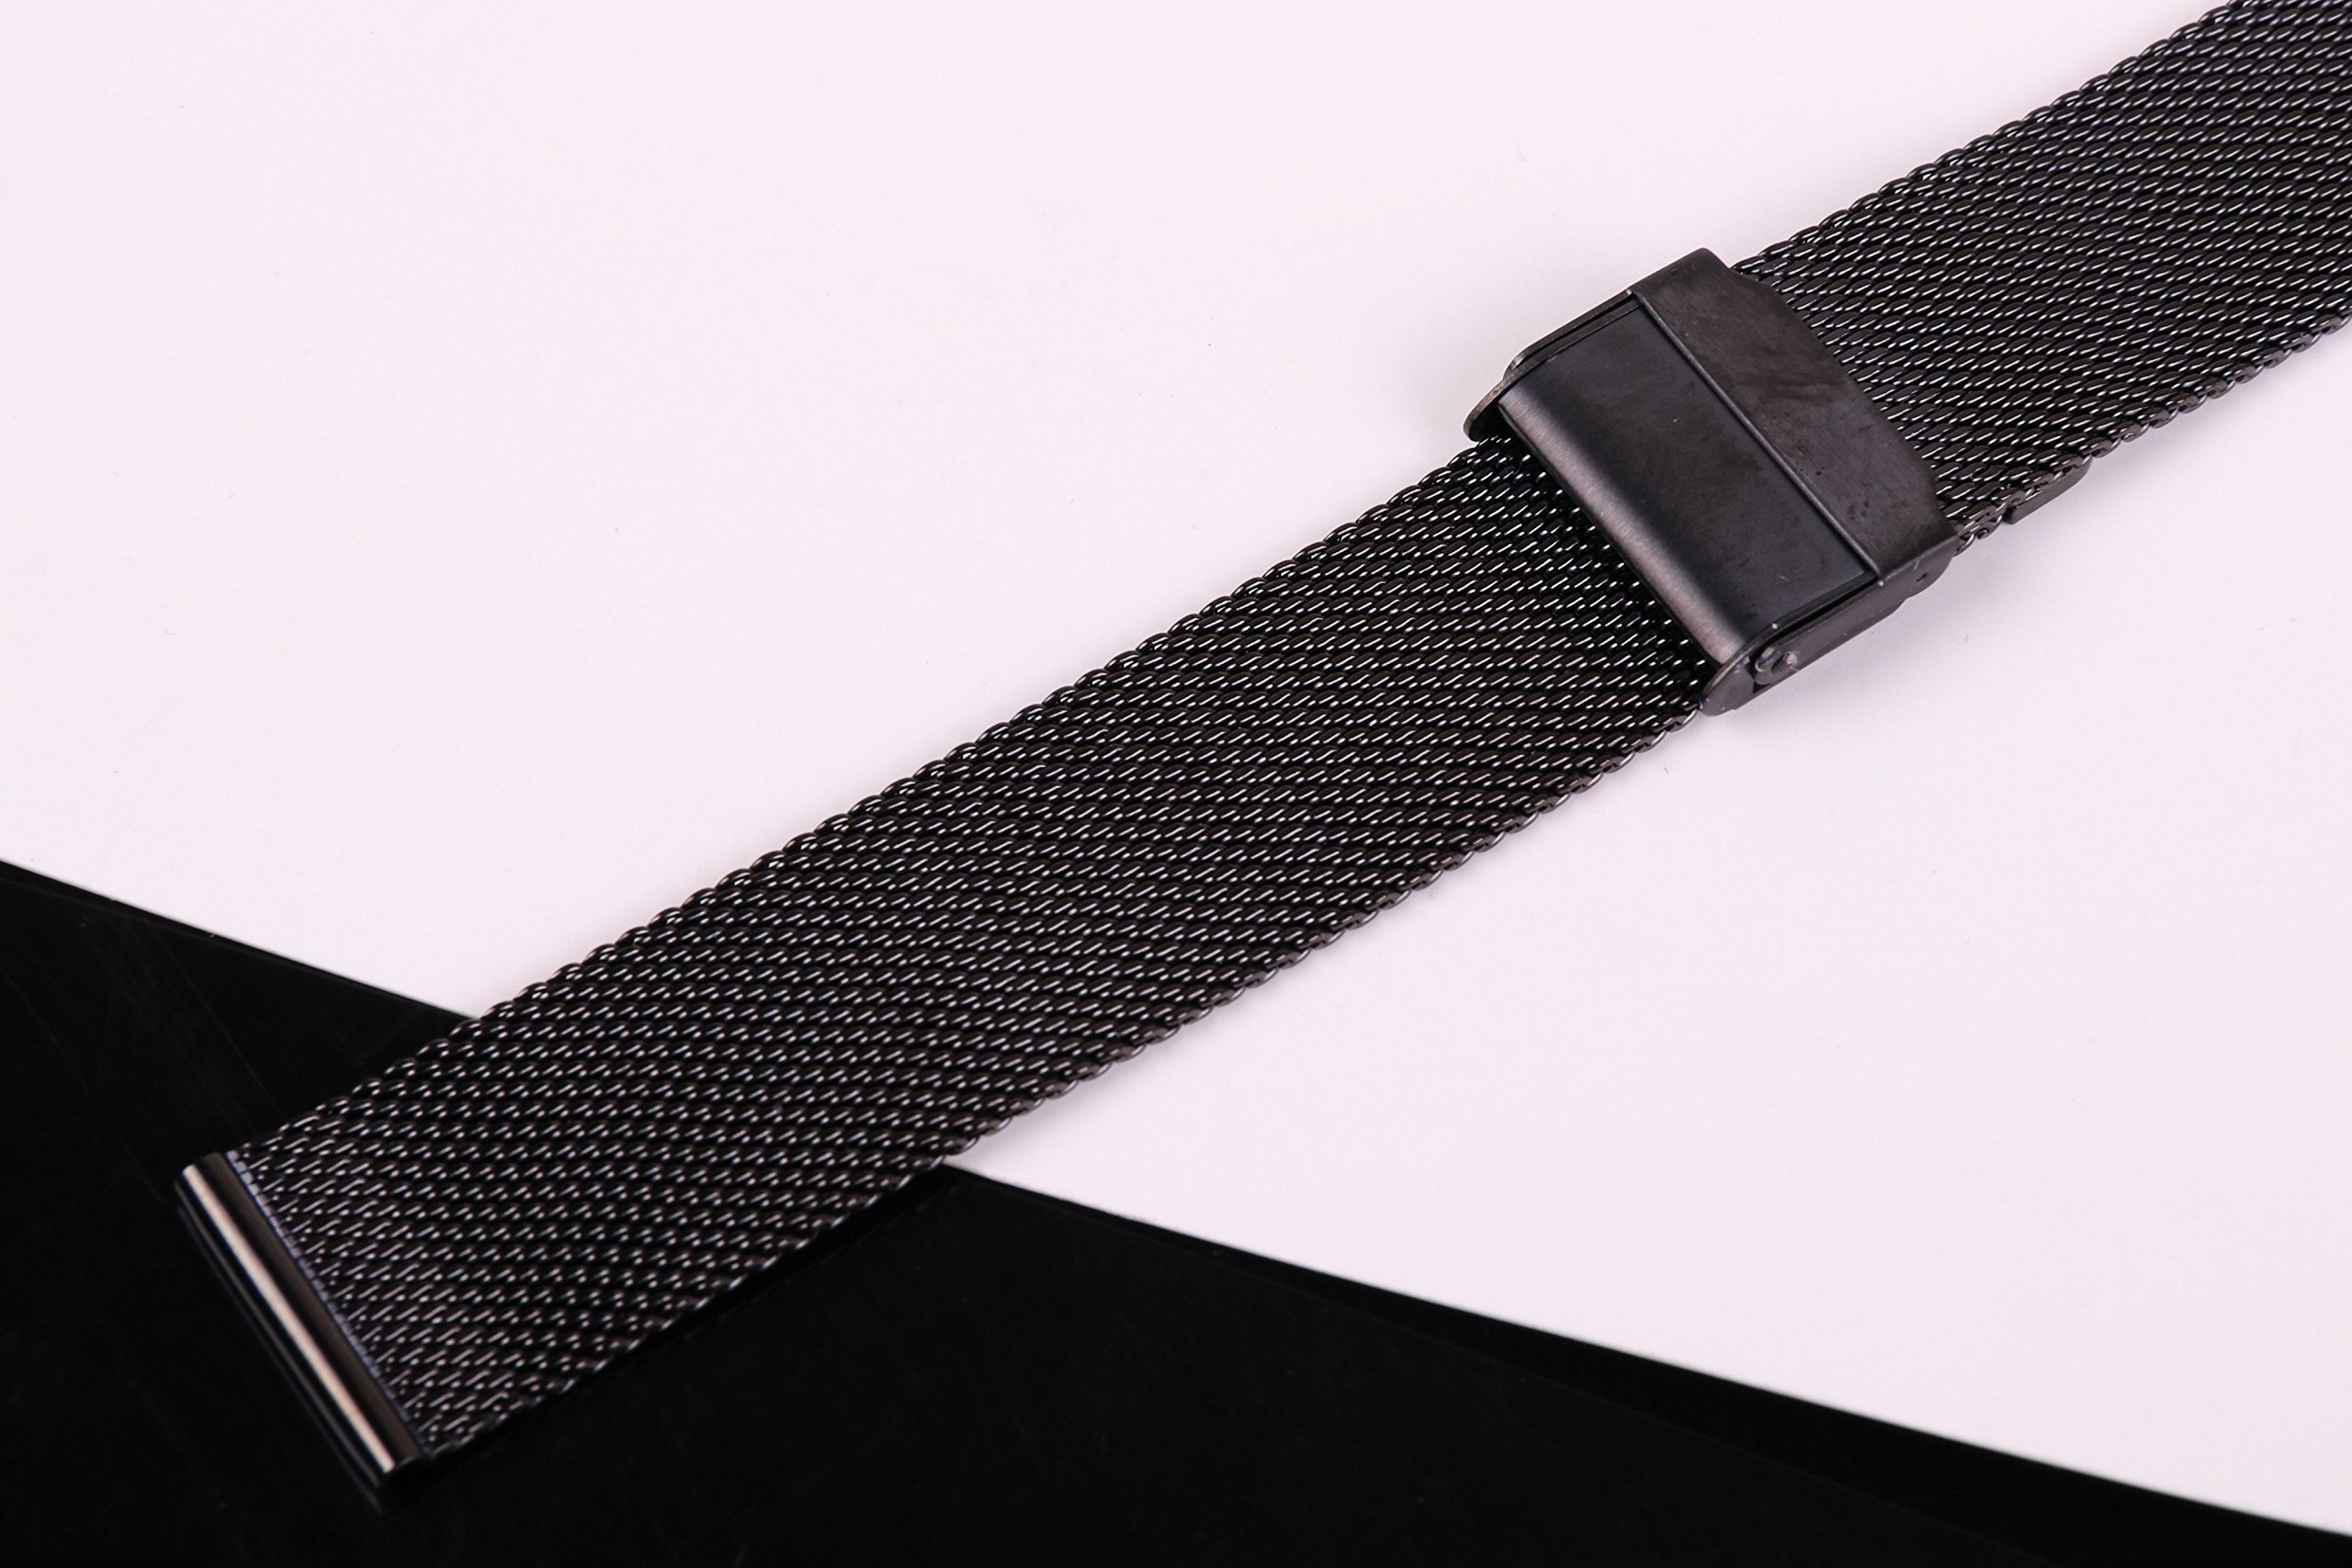 20mm Stainless Steel Mesh Watch Band Black Chainmail Mesh Strap Replacement for Business Sport Watches by autulet (Image #3)